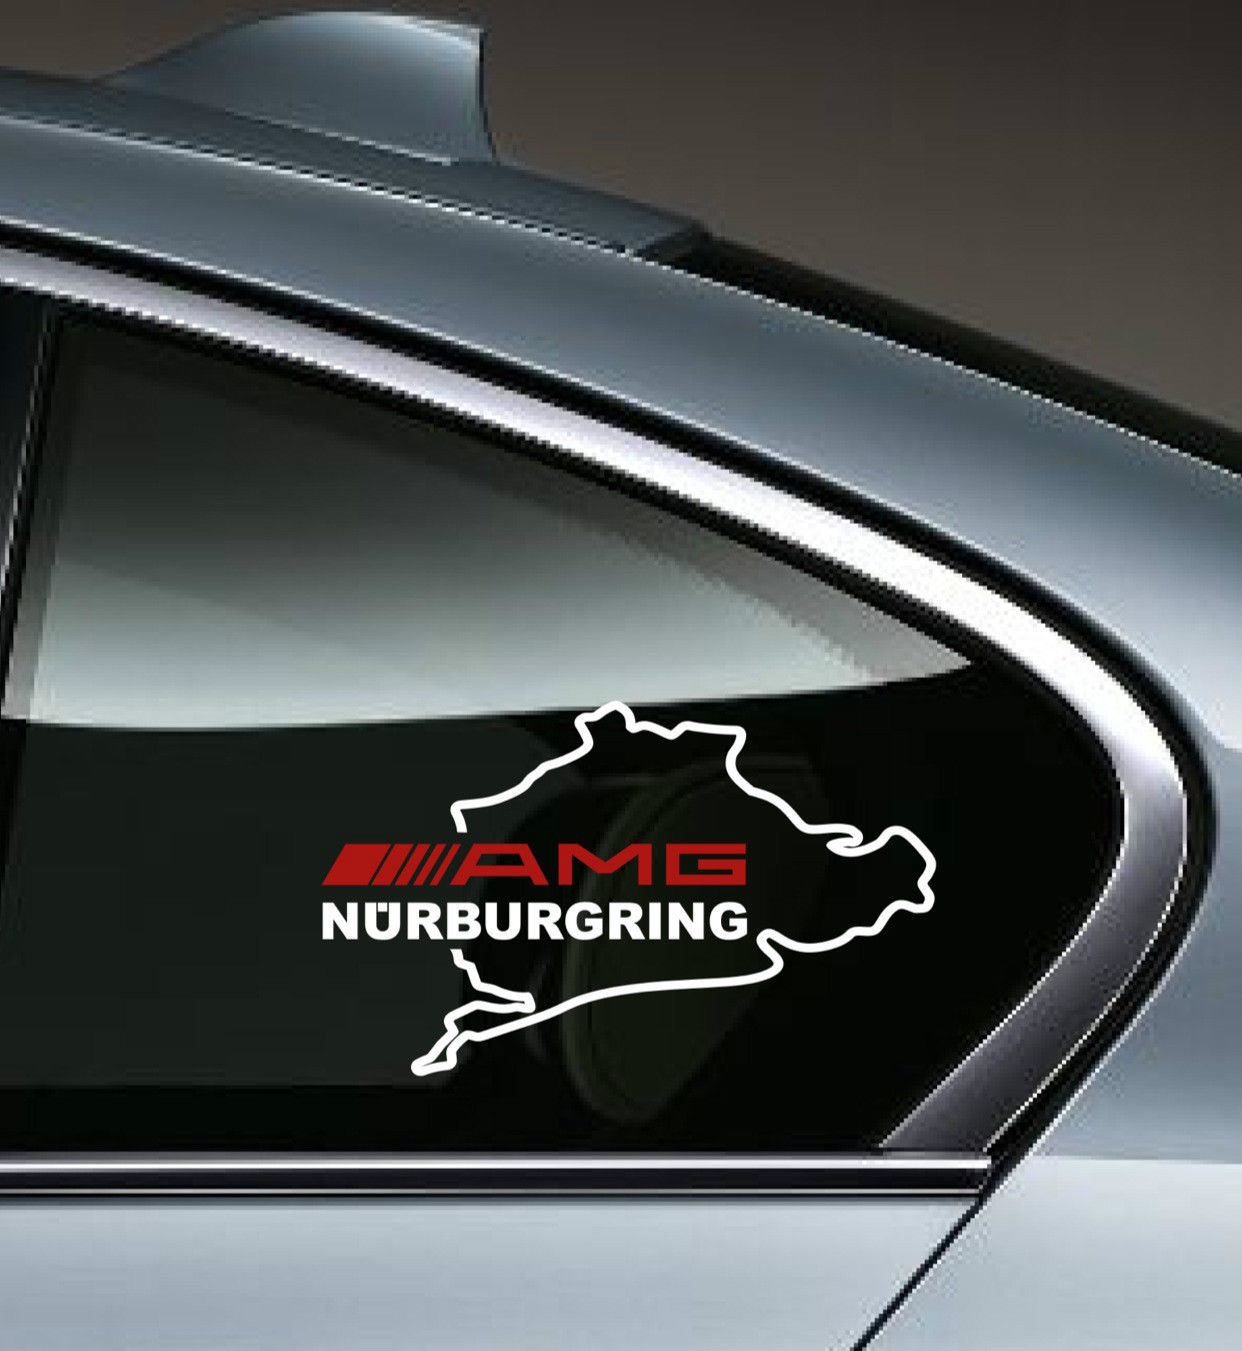 Product amg nurburgring mercedes benz c55 clk e55 cls63 for A mercedes benz product sticker